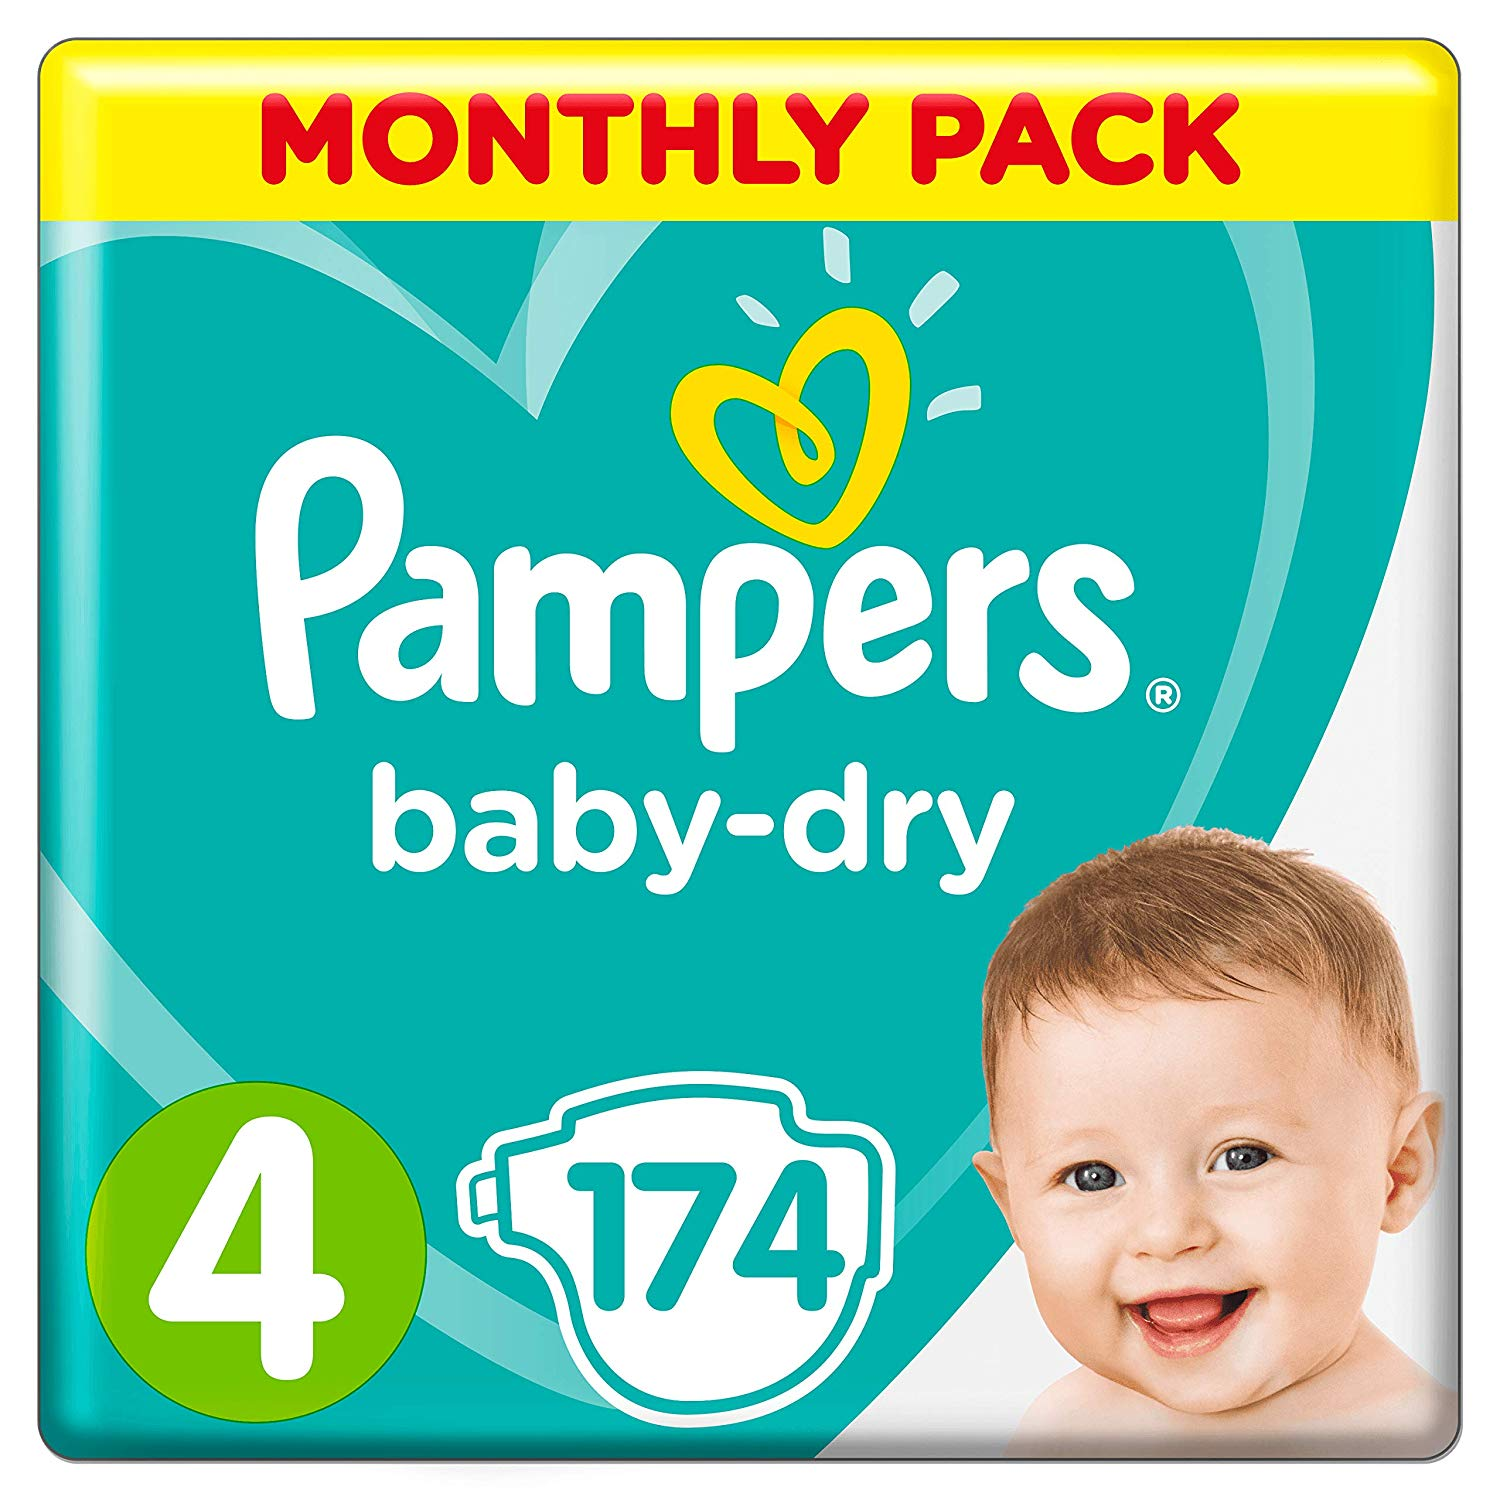 Pampers Baby-Dry, 174 Nappies, 9-14 kg